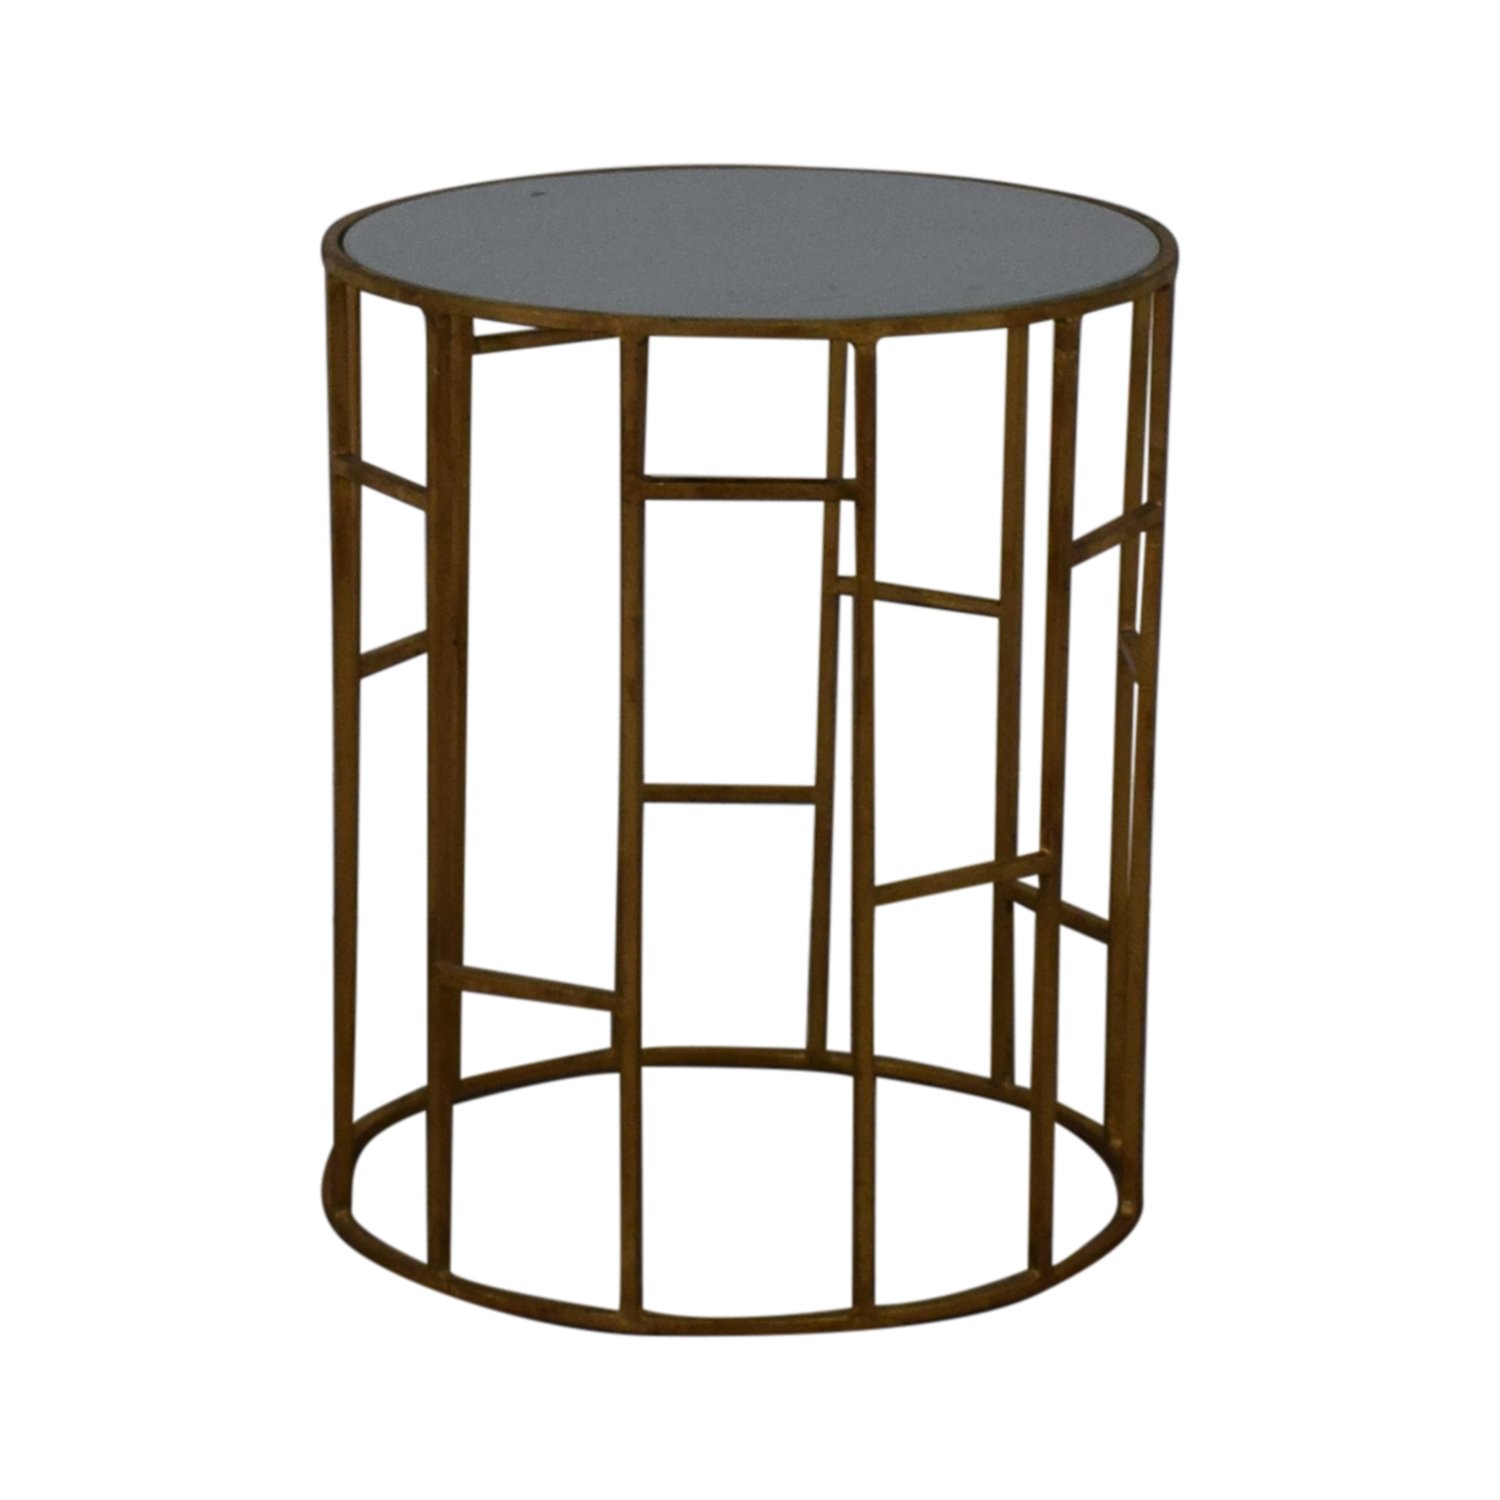 Safavieh Doreen Gold & Glass Accent Table sale